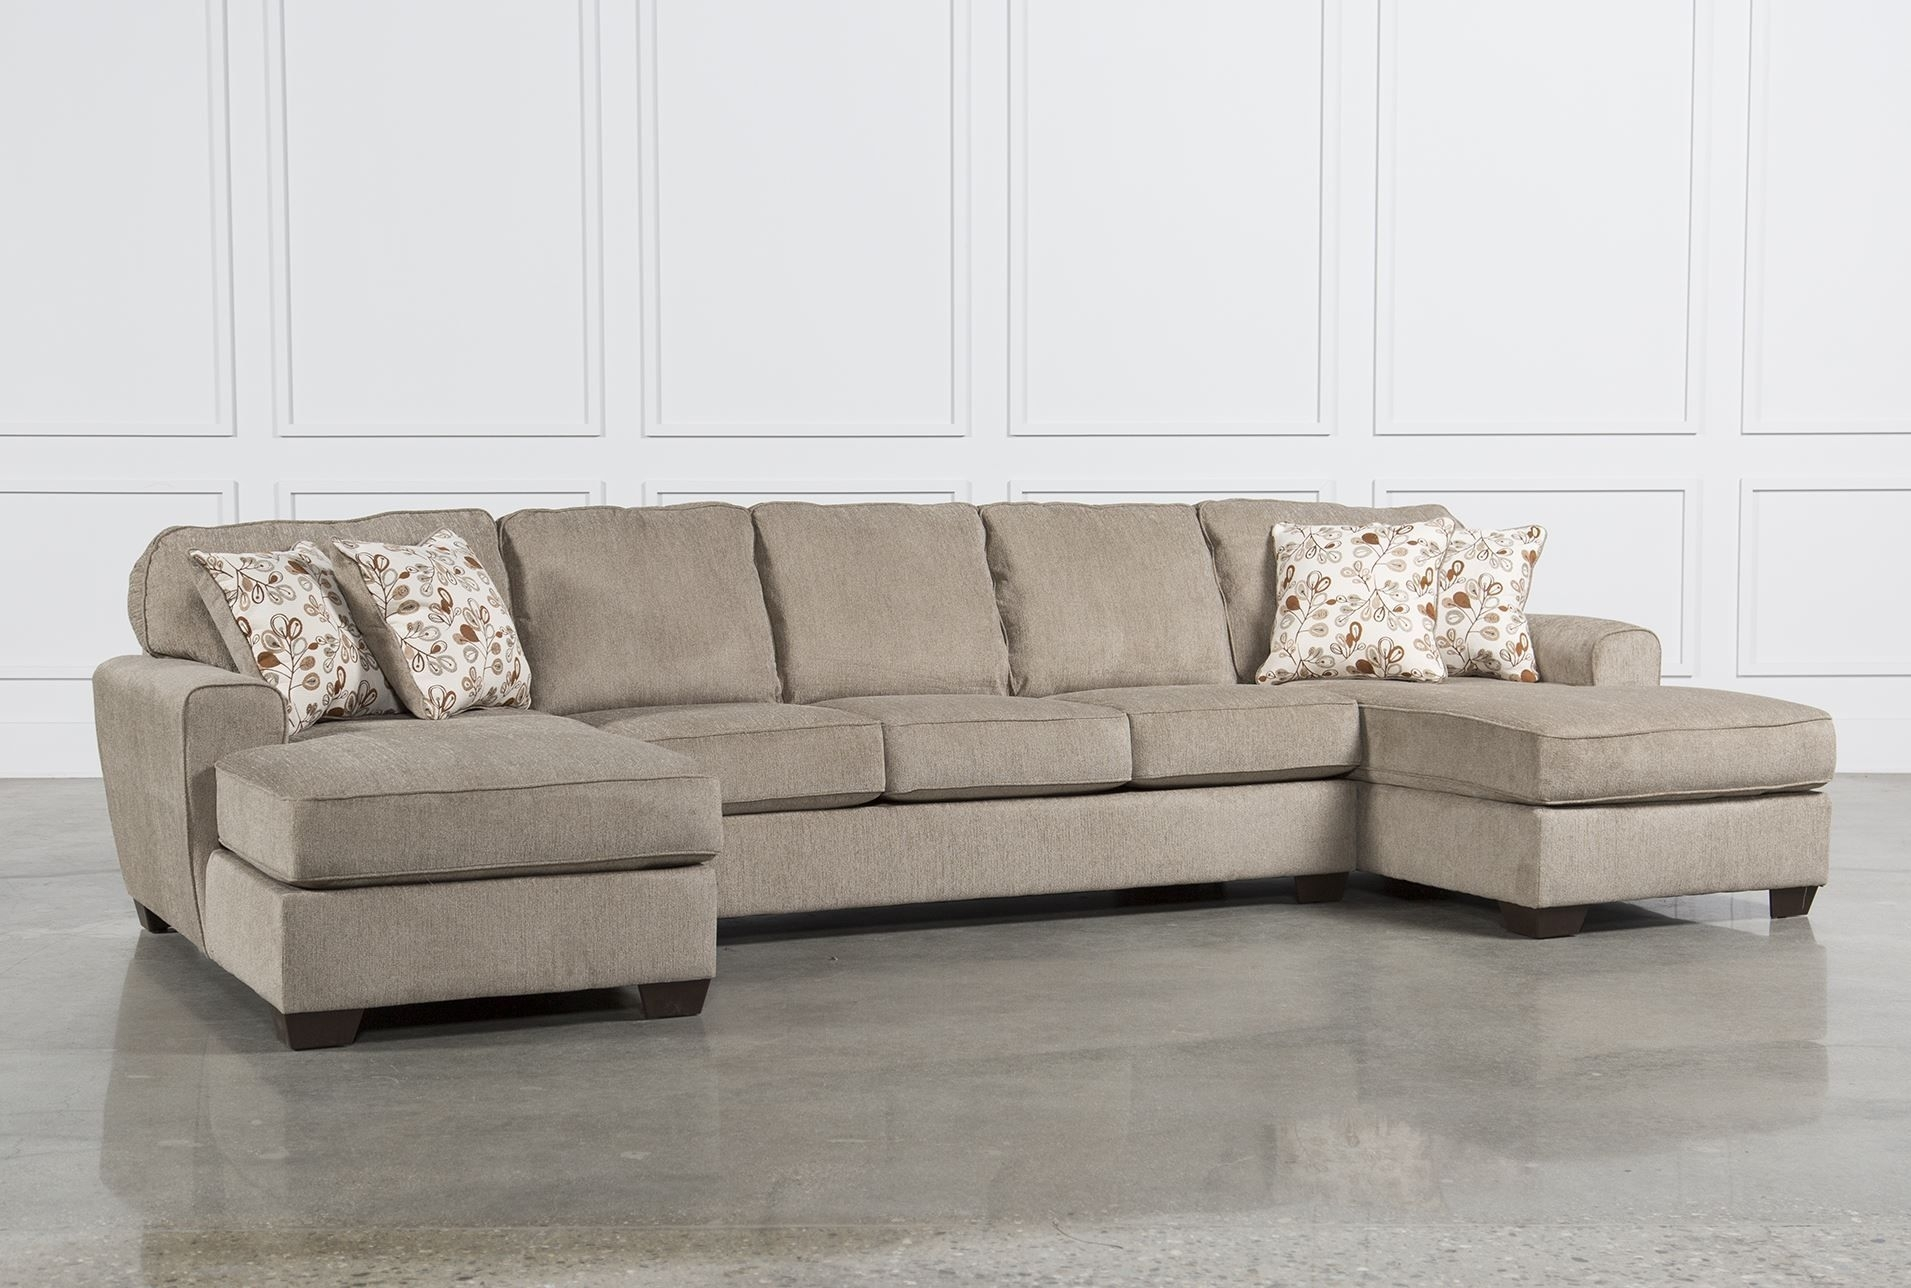 Patola Park 3 Piece Sectional W/2 Corner Chaises   Signature Within Avery 2 Piece Sectionals With Raf Armless Chaise (Photo 8 of 30)